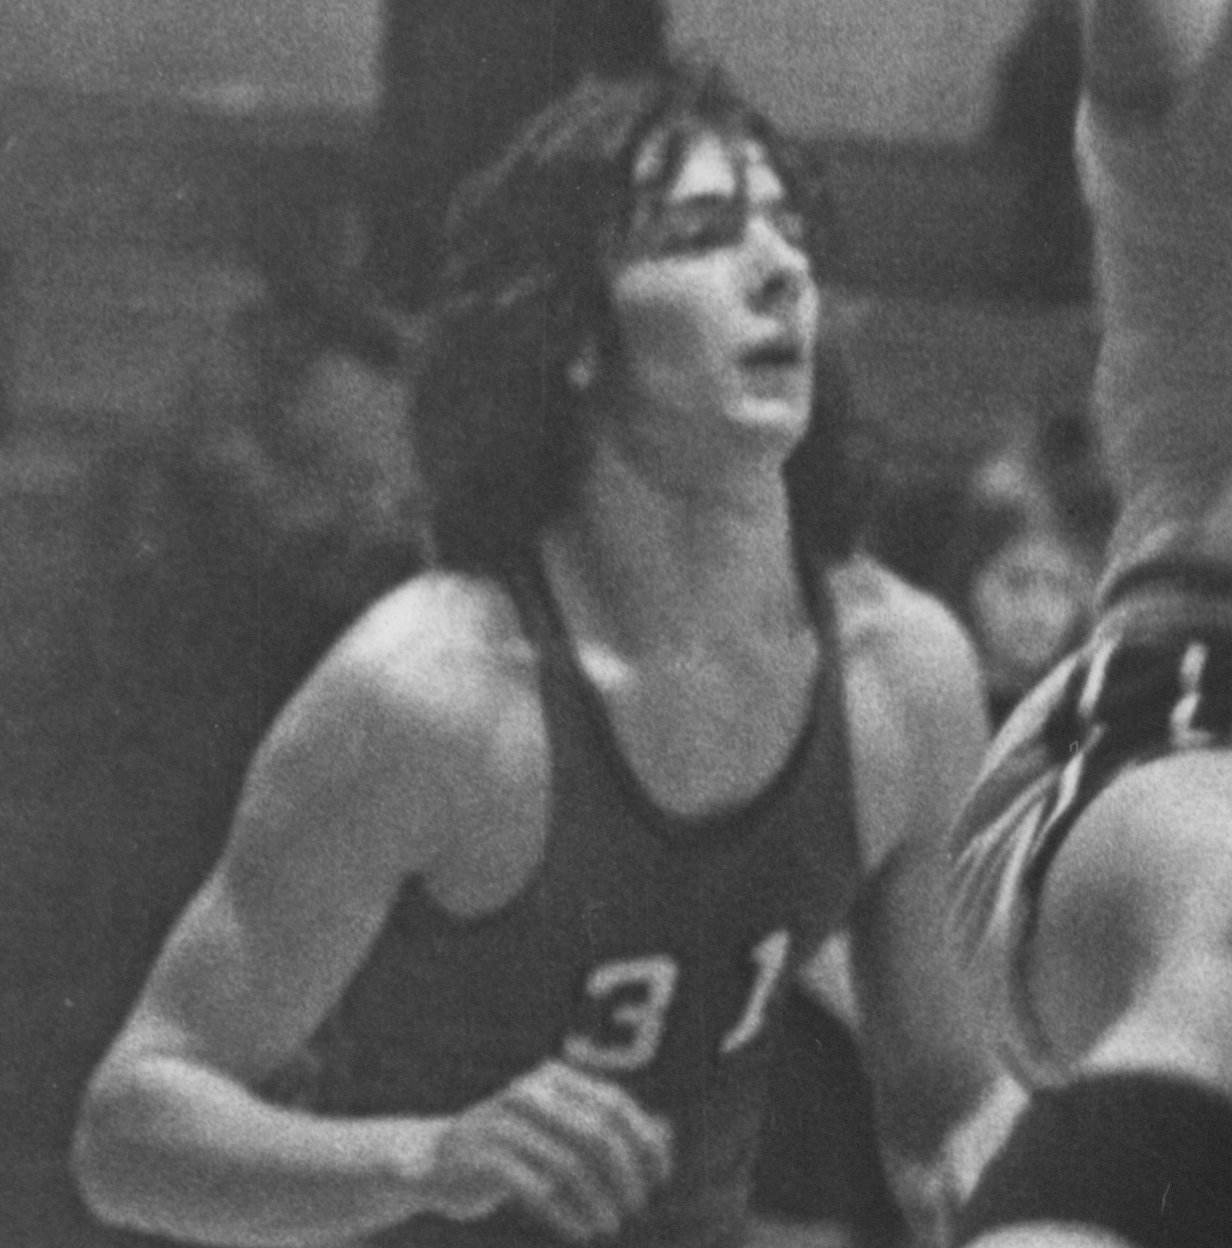 Bethany Lutheran College 1975-1976 snapshot of men's basketball player, Steve Mailloux